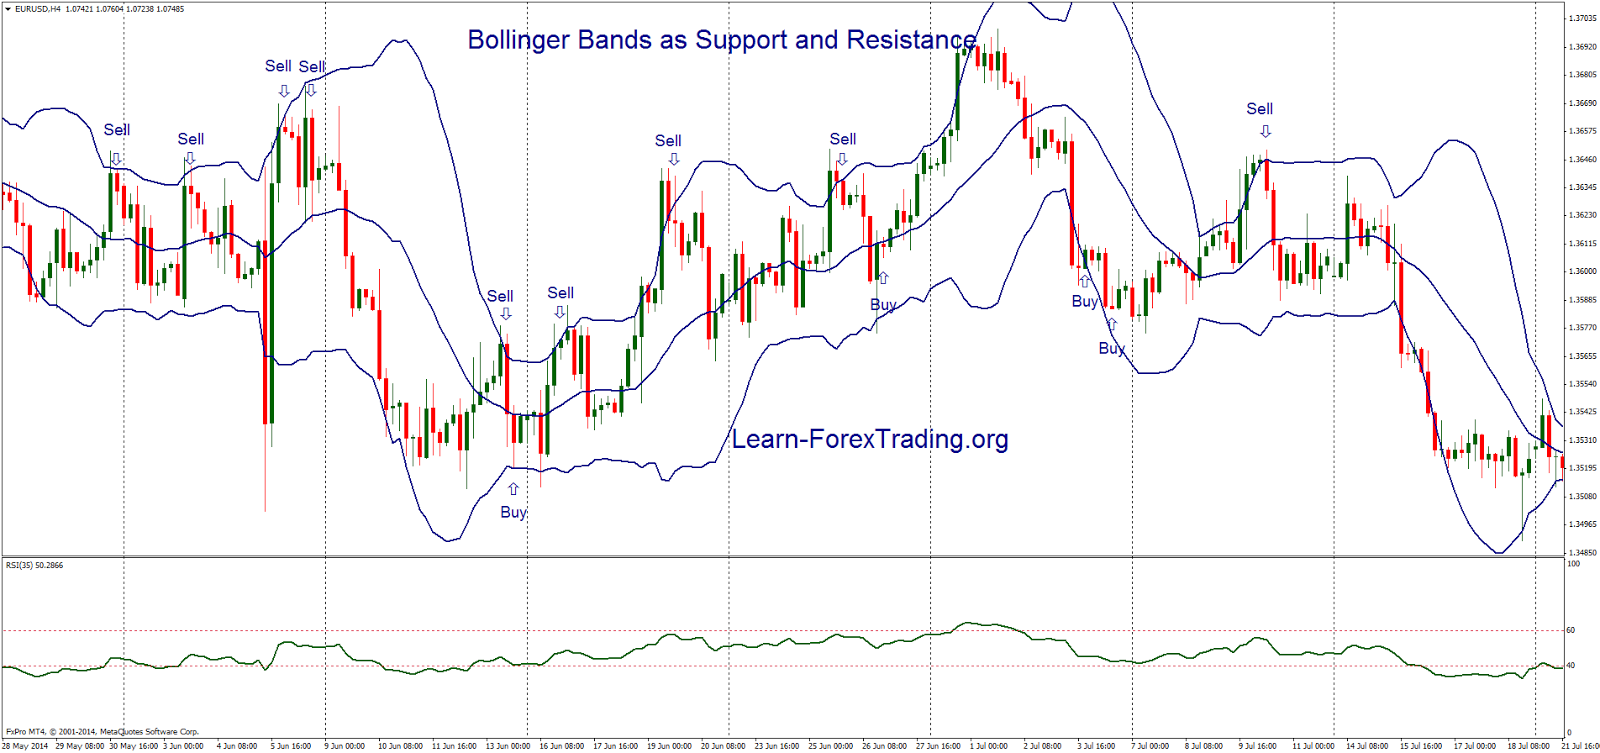 Bollinger Bands as Support and Resistance